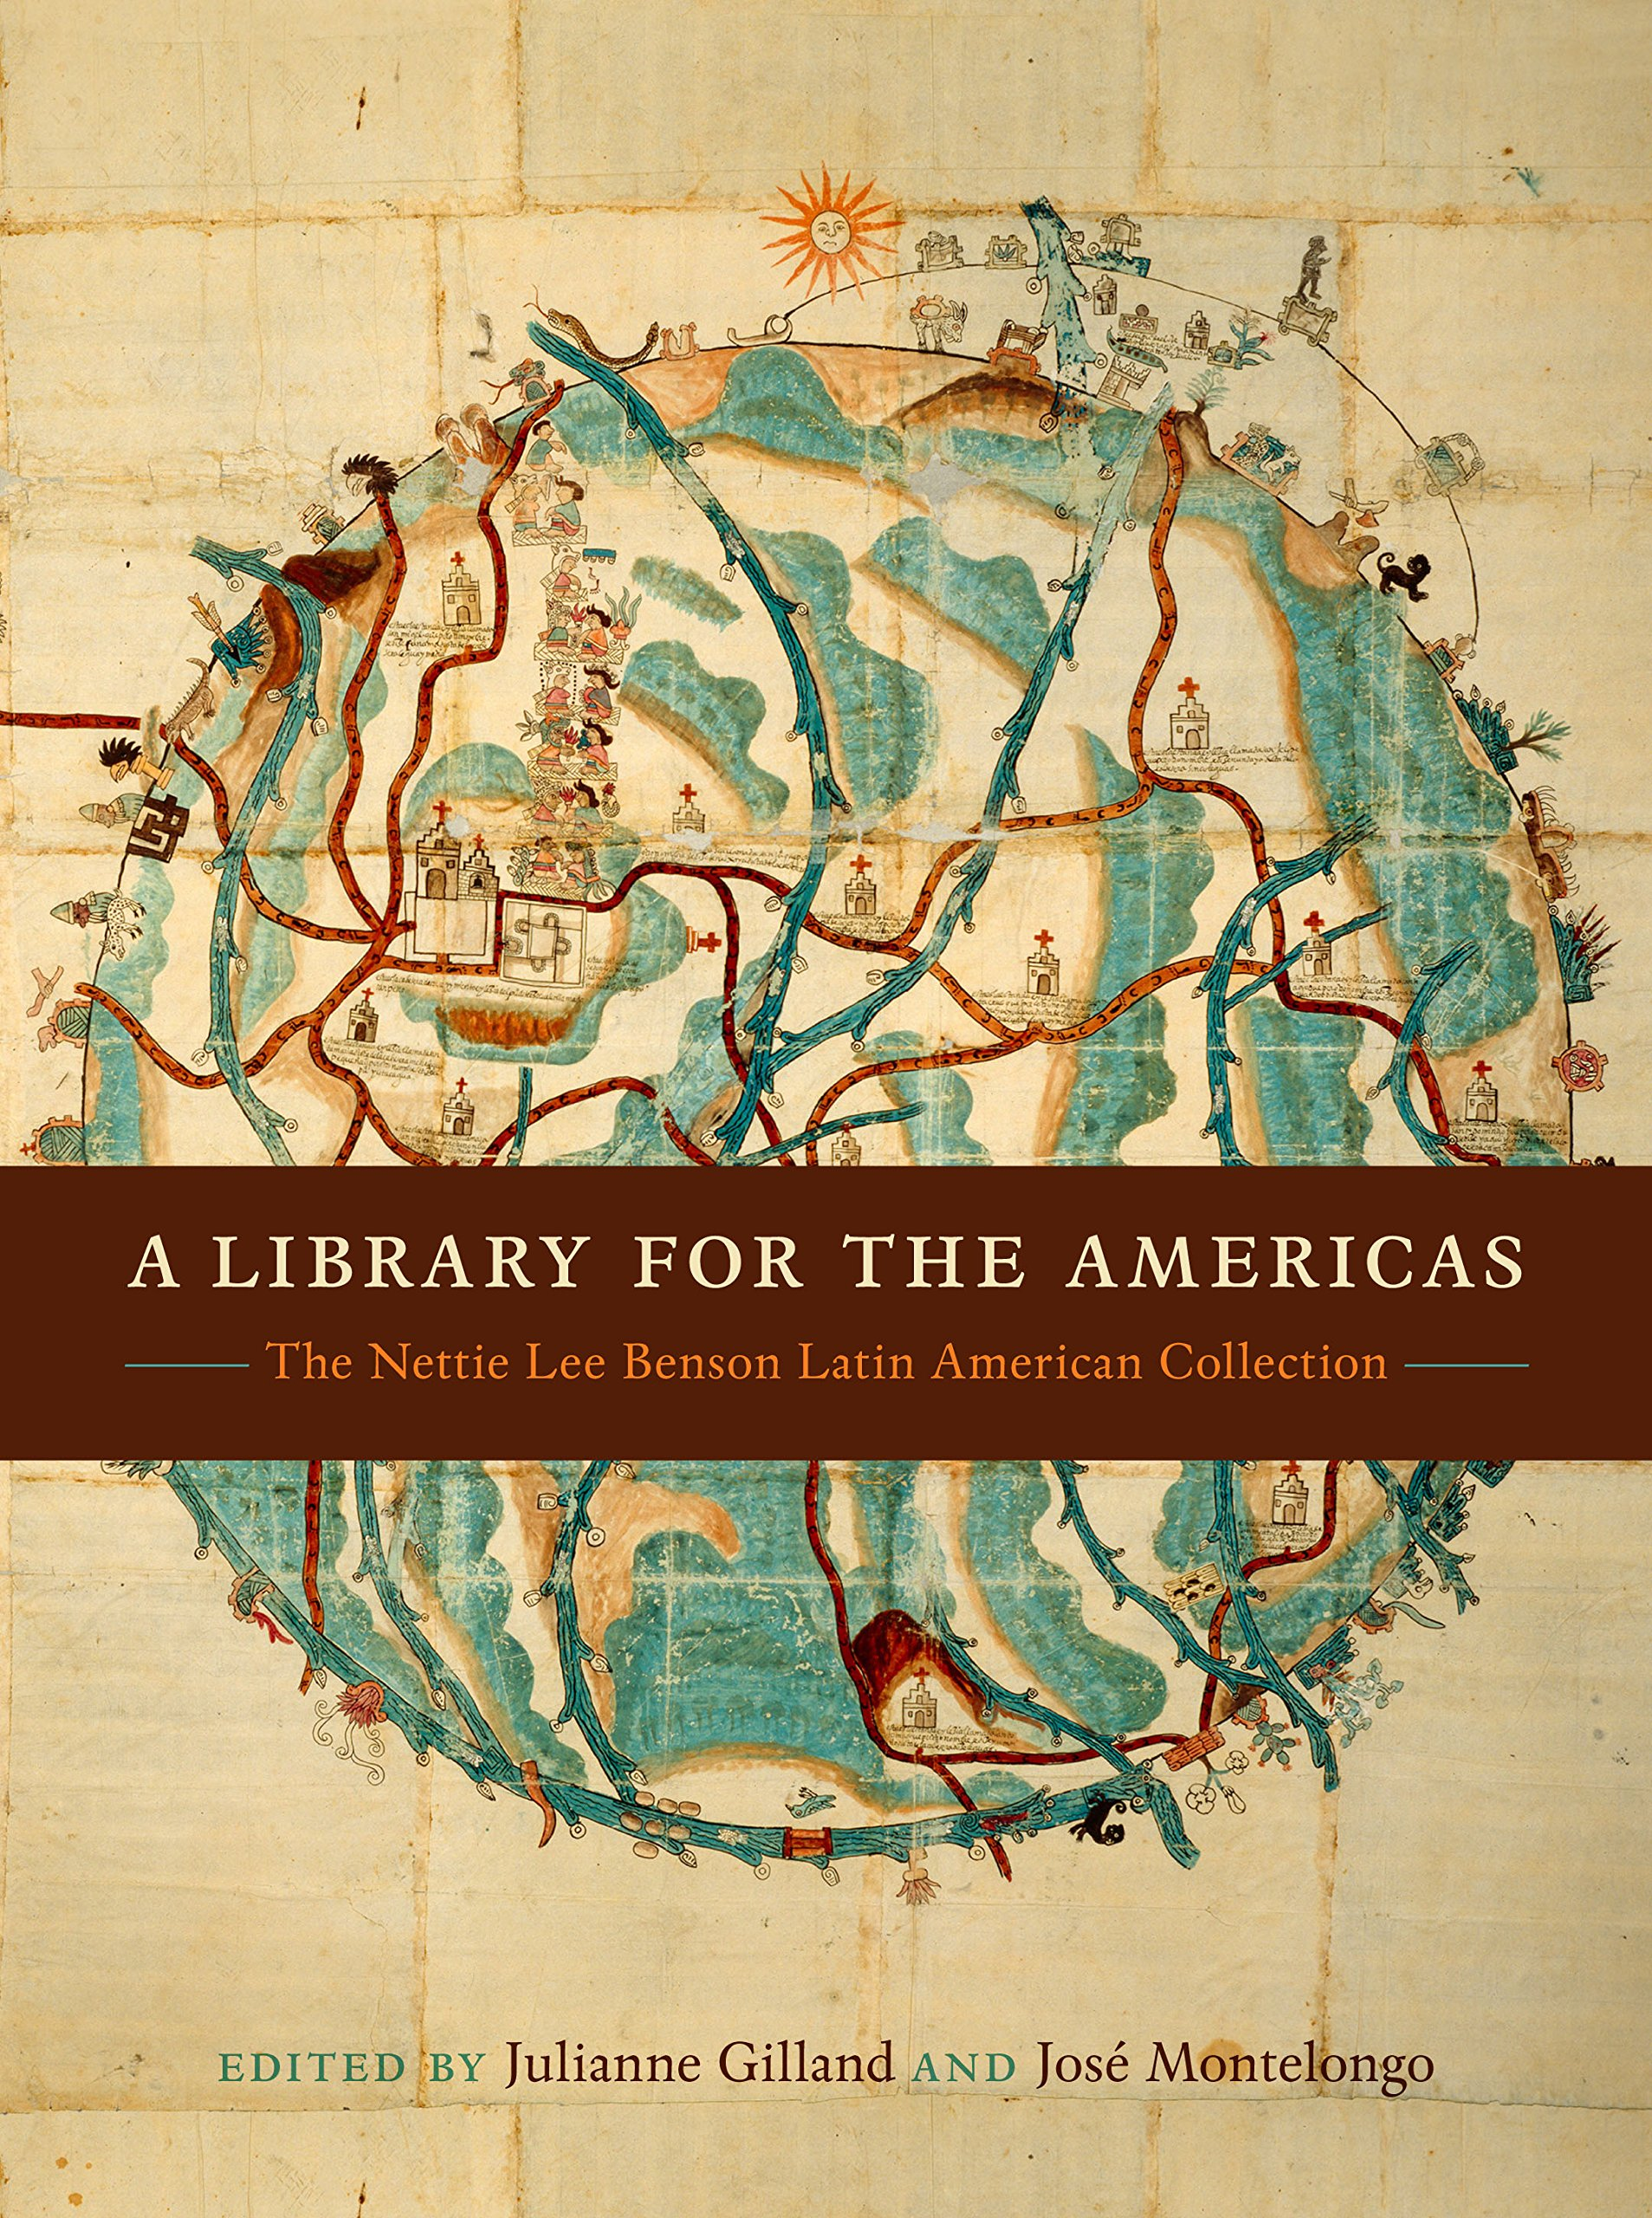 A Library for the Americas: The Nettie Lee Benson Latin American Collection by University of Texas Press